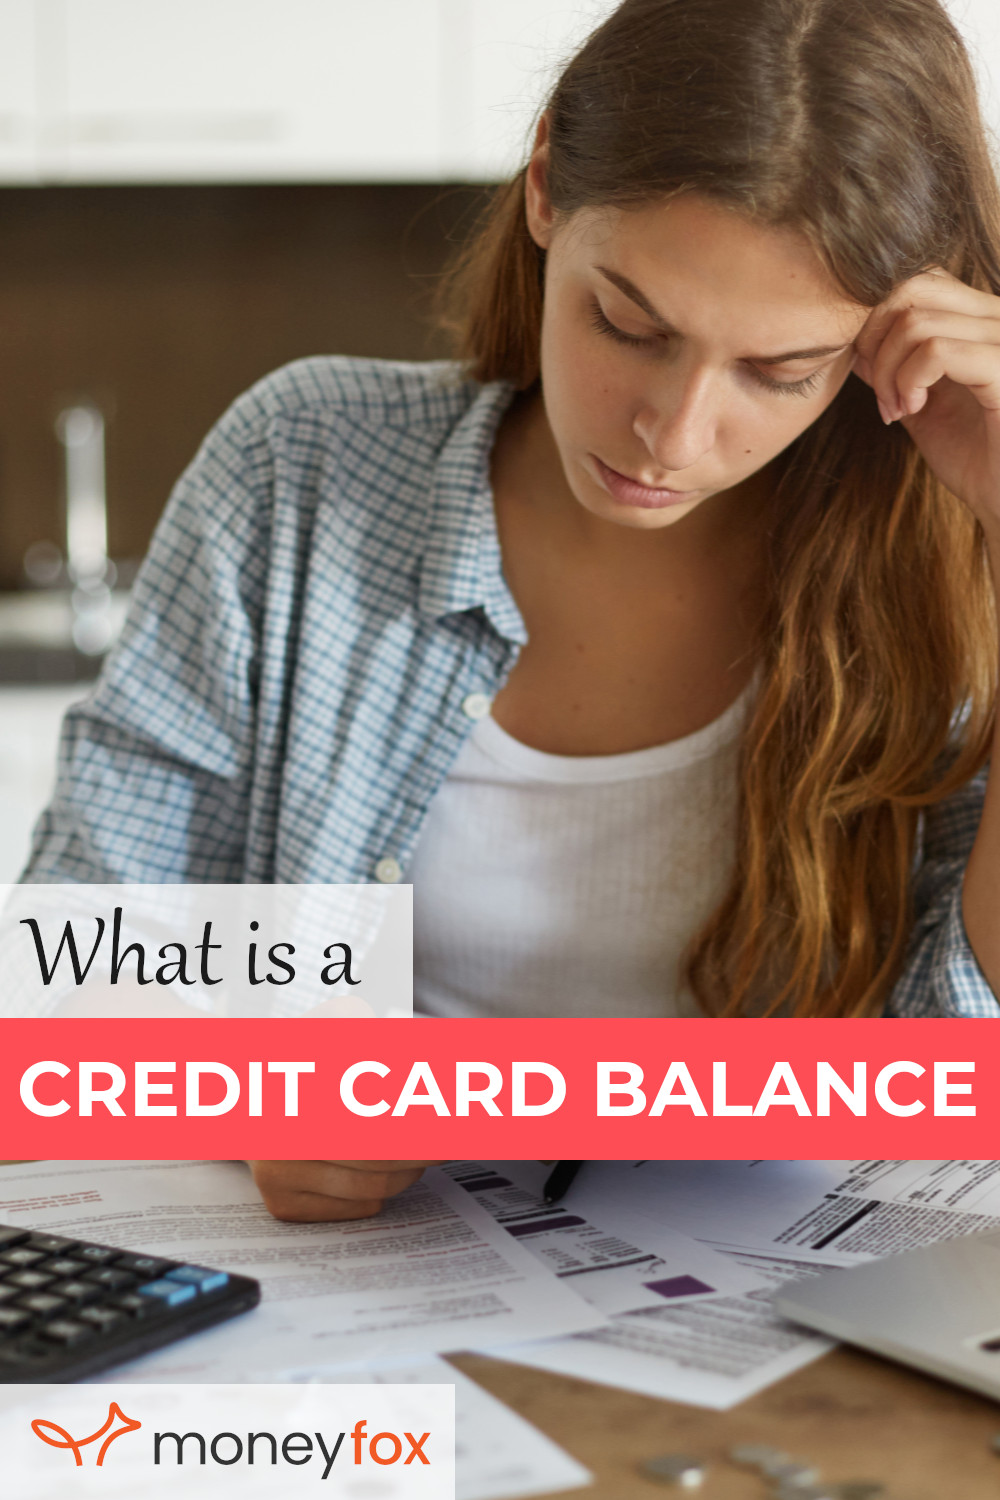 What is a credit card balance - the complete guide explaining what it's made of and the differences between different types of balances.